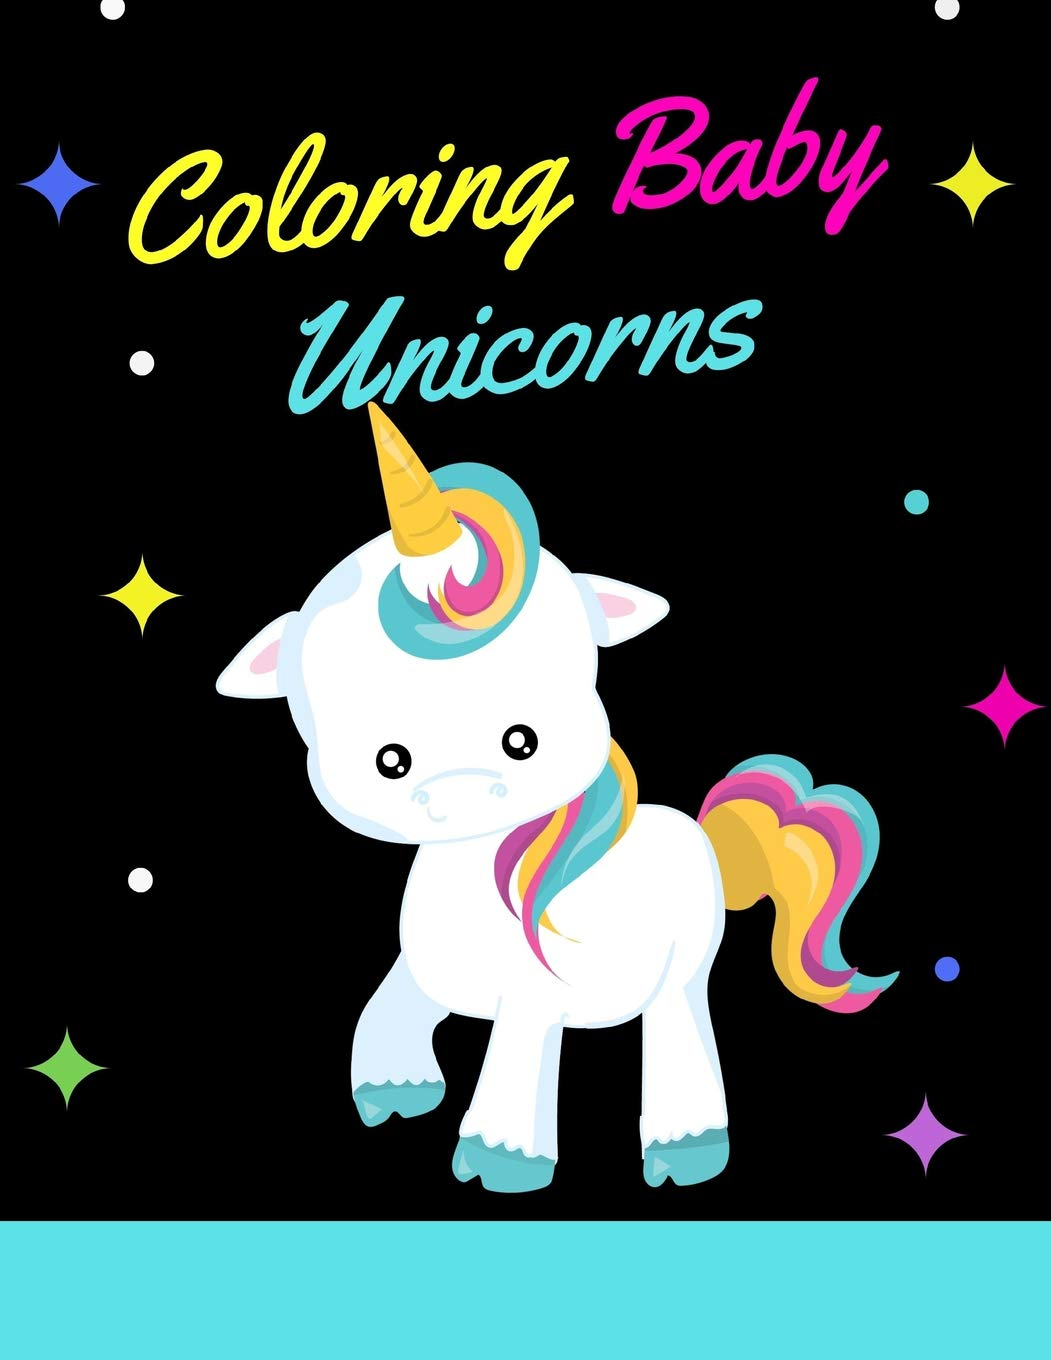 Coloring Baby Unicorns A Dark Stars Black Magical Theme